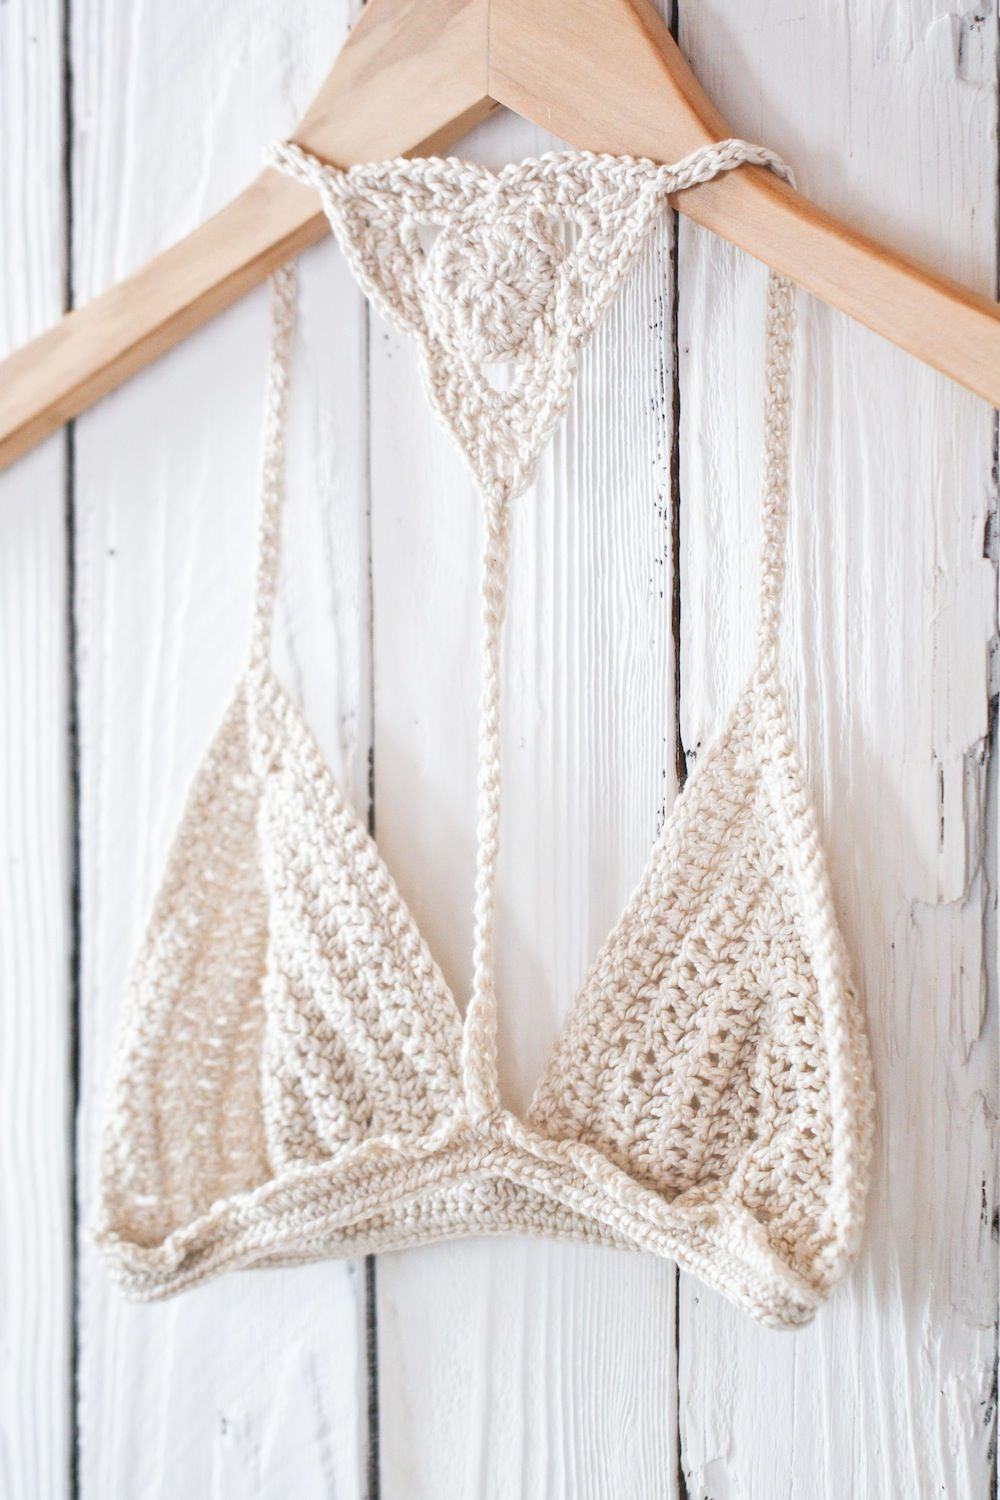 Bare it all crochet bralette $49.99 - www.imnotyourtype.com | www ...